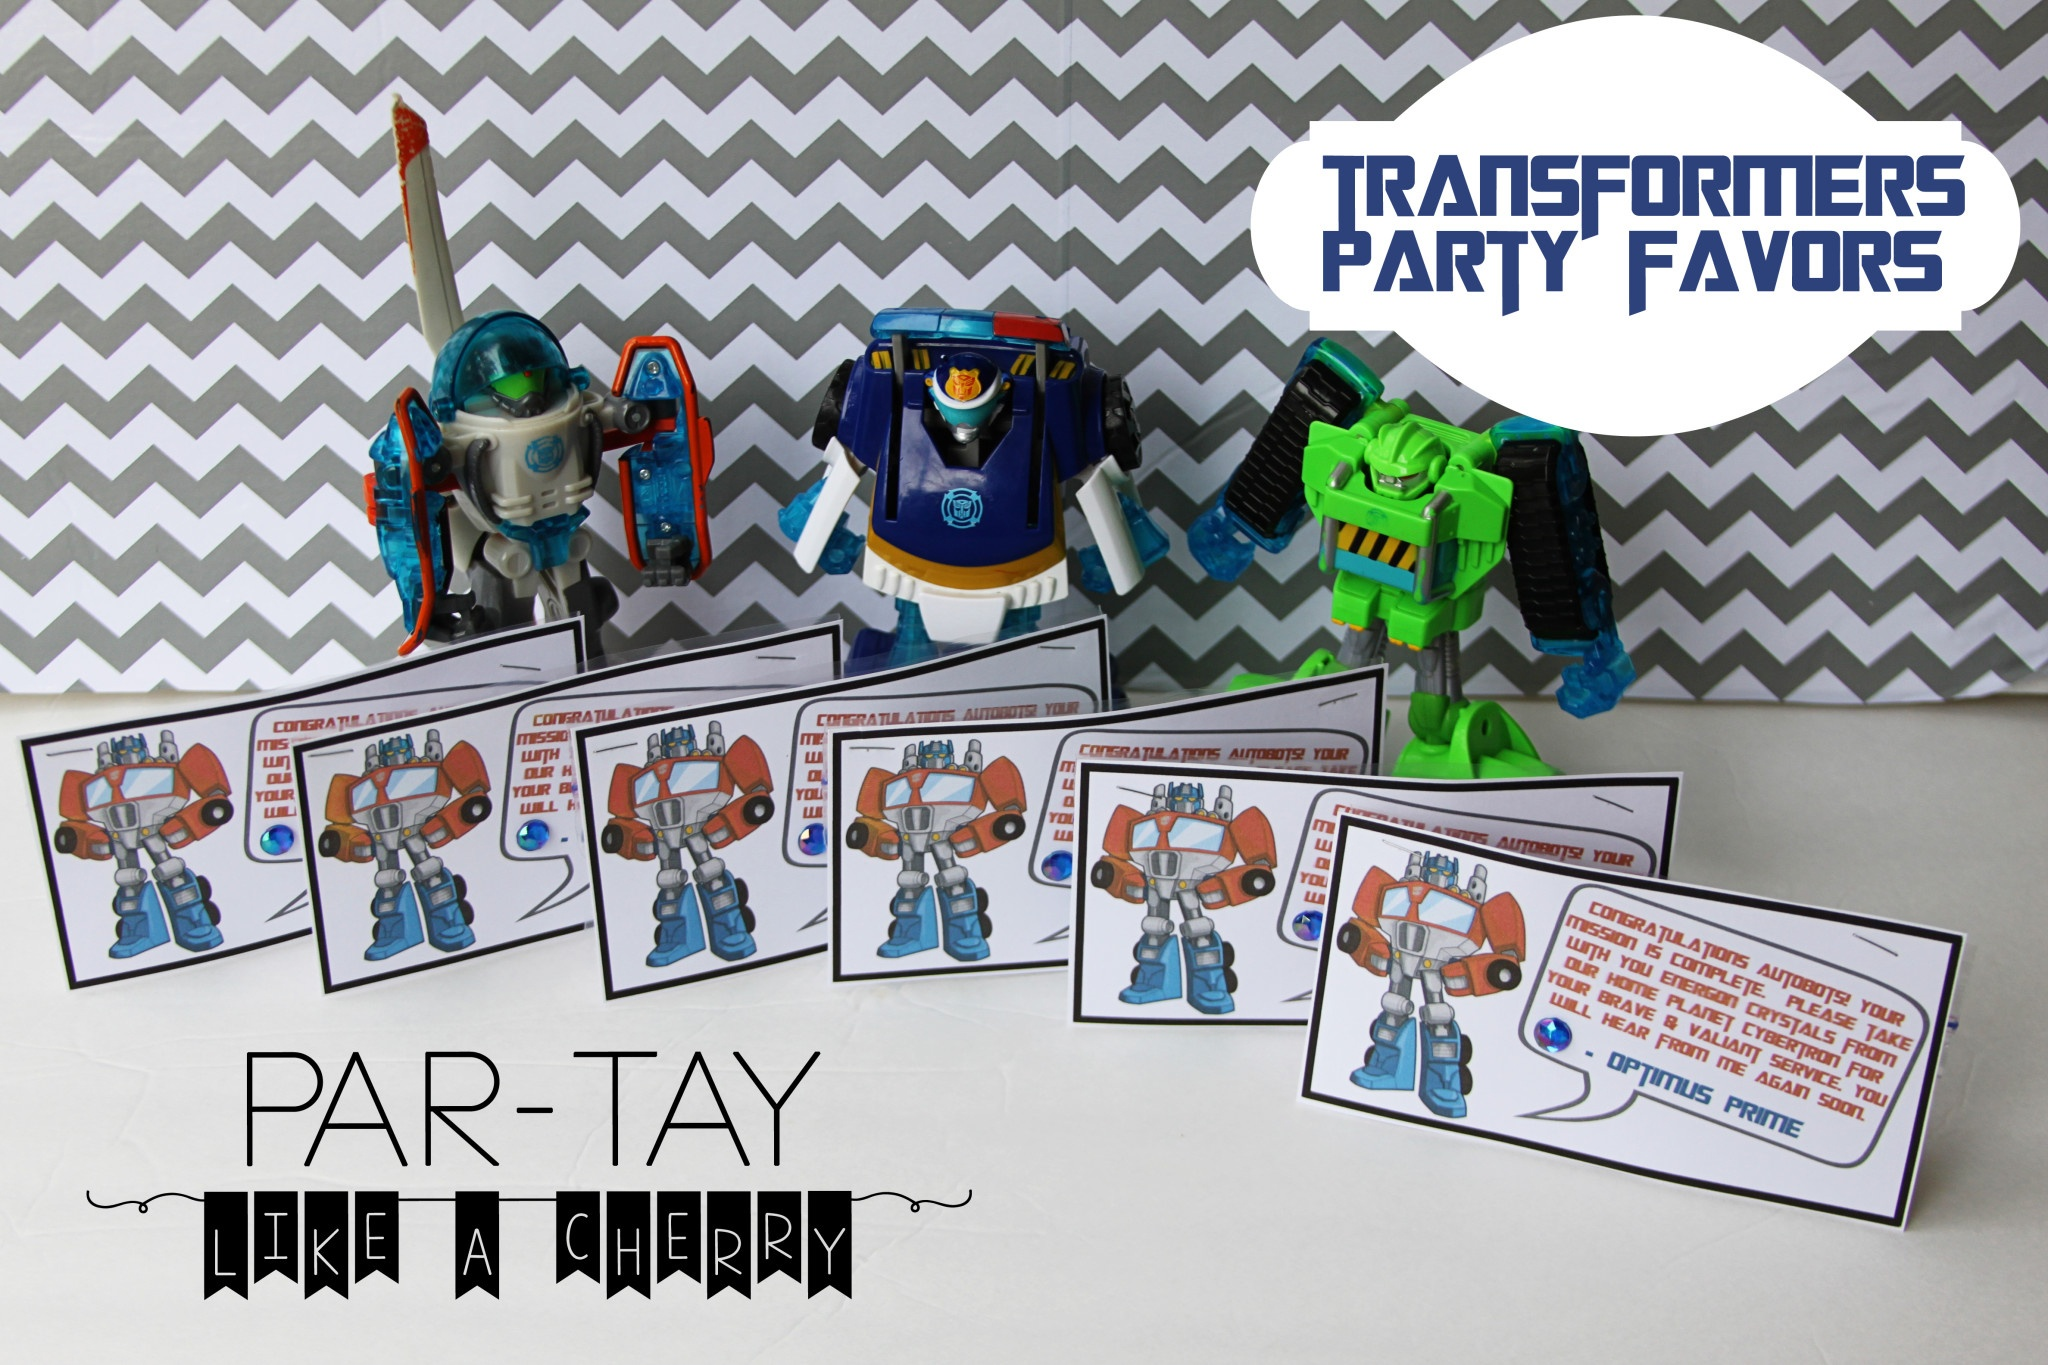 Transformer Party Favors - Party Like A Cherry - Transformers Party Invitations Free Printable